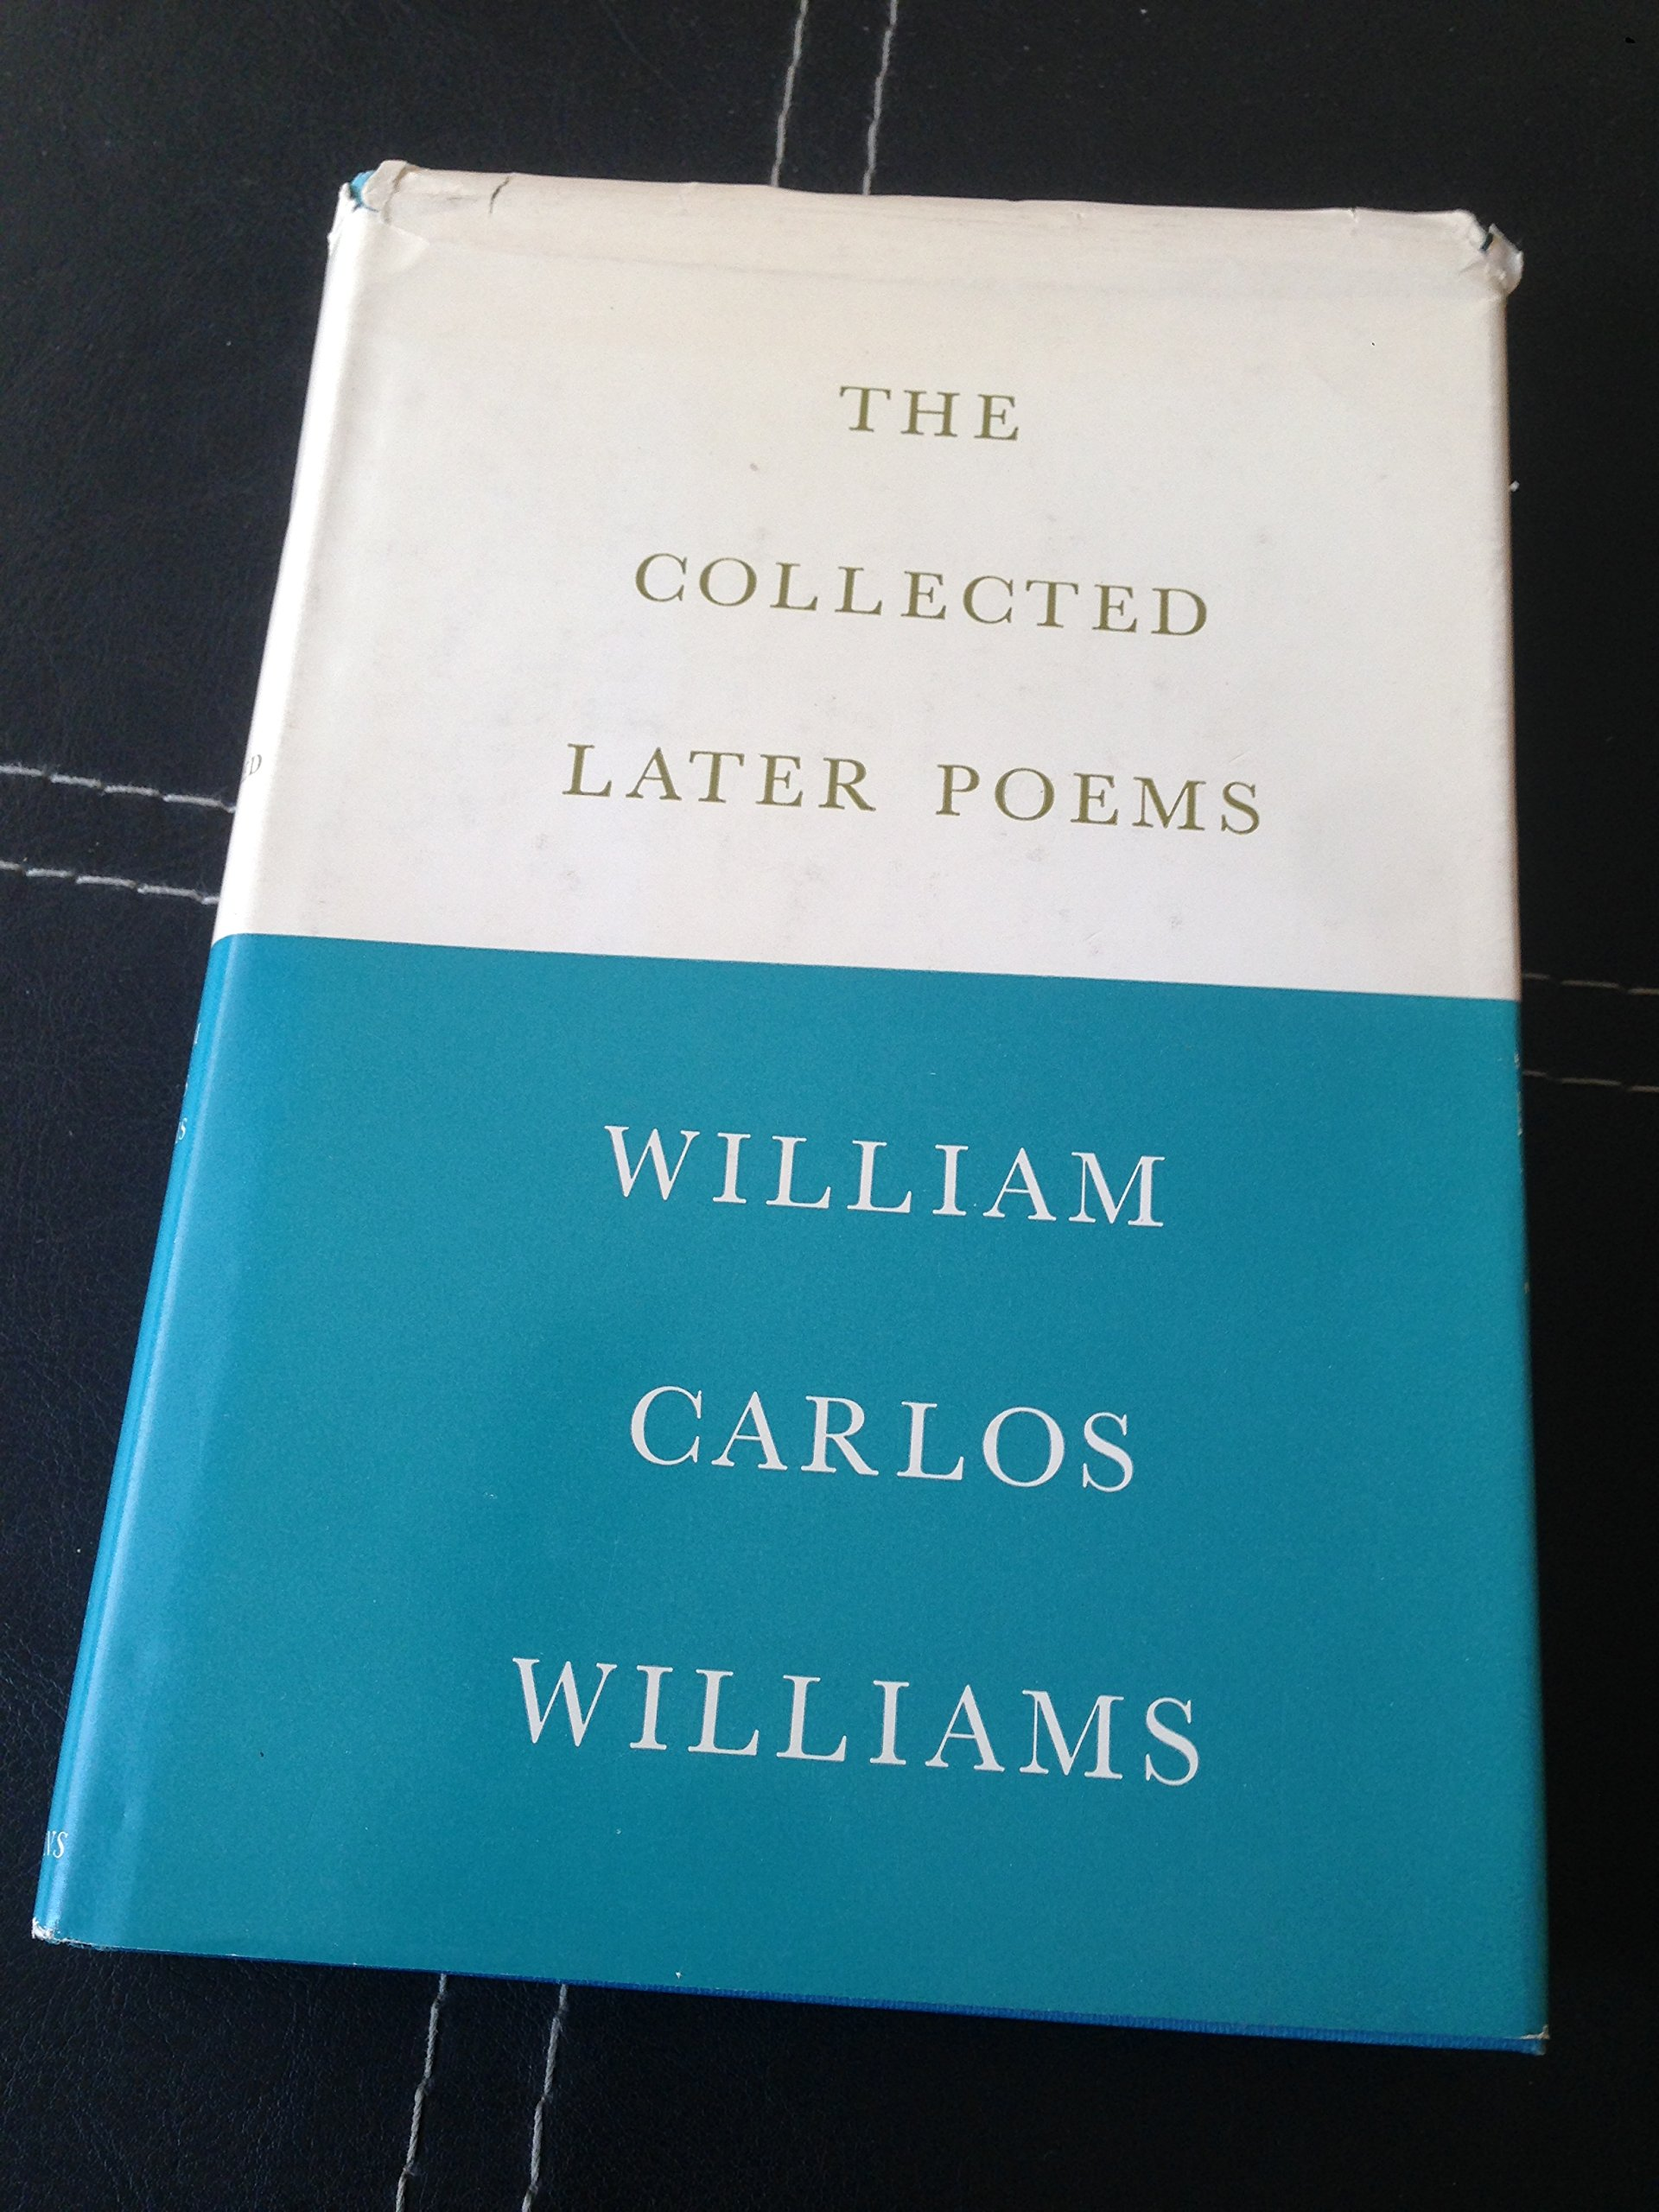 The collected later poems of William Carlos Williams: William Carlos ...